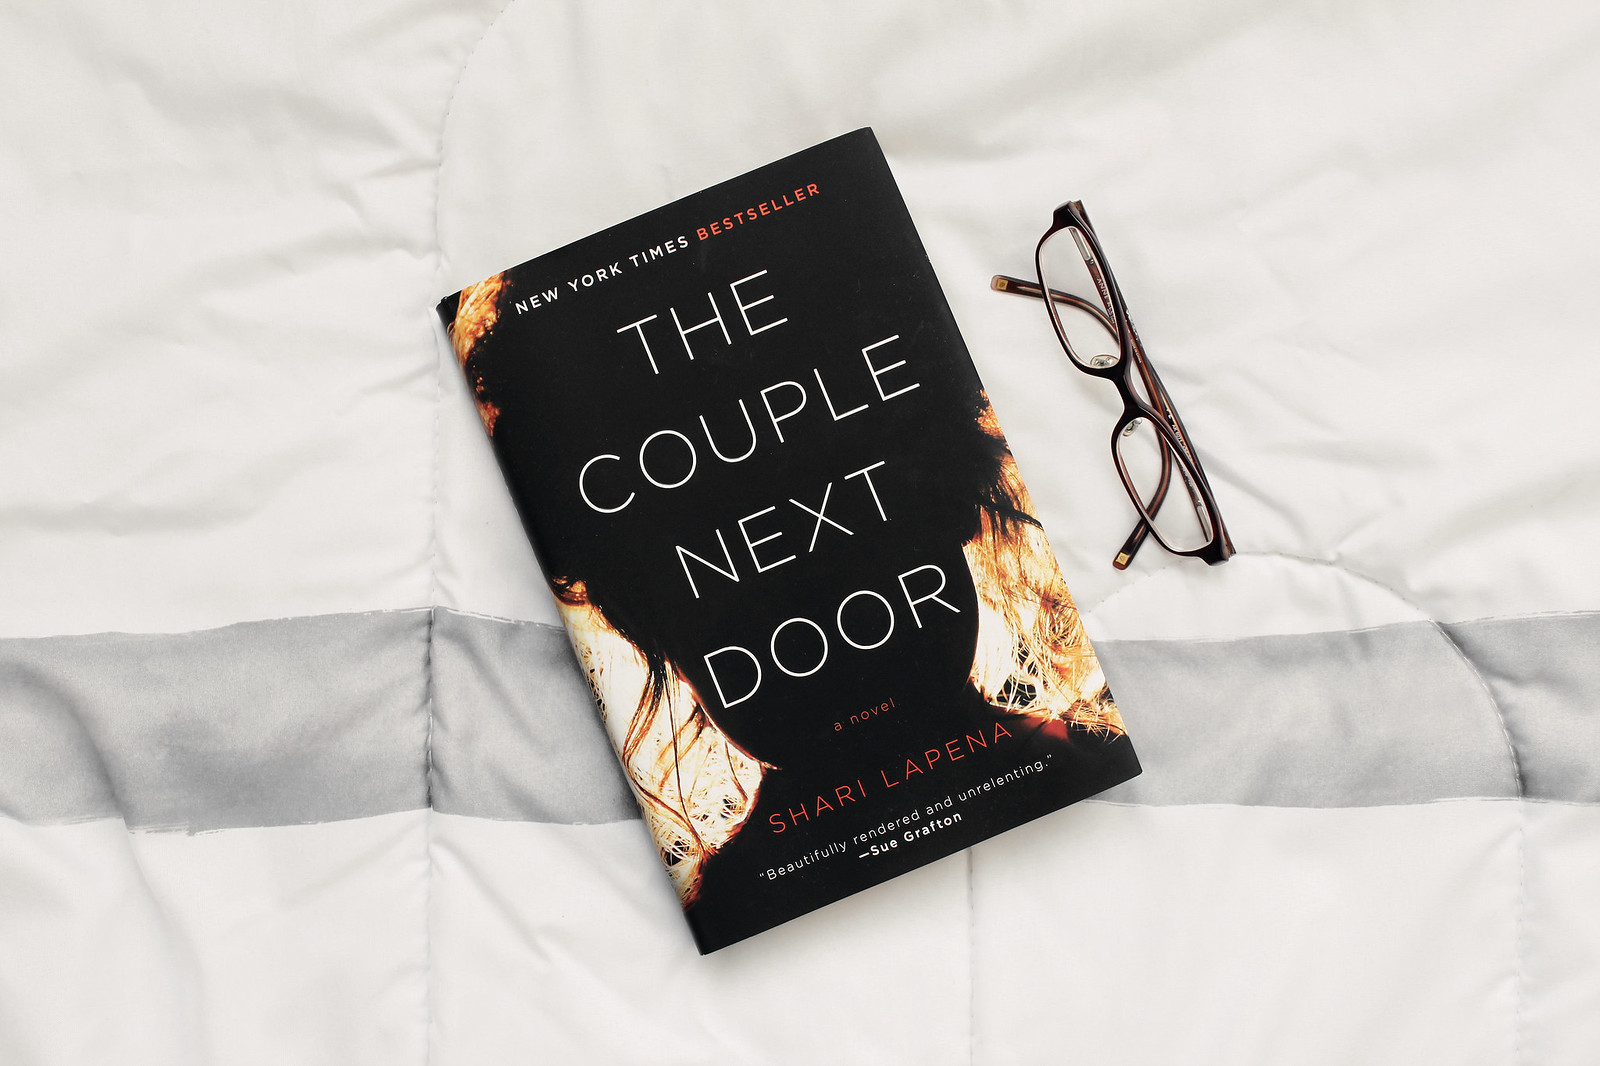 3265-the-couple-next-door-reading-books-lifestyle-elizabeeetht-clothestoyouuu